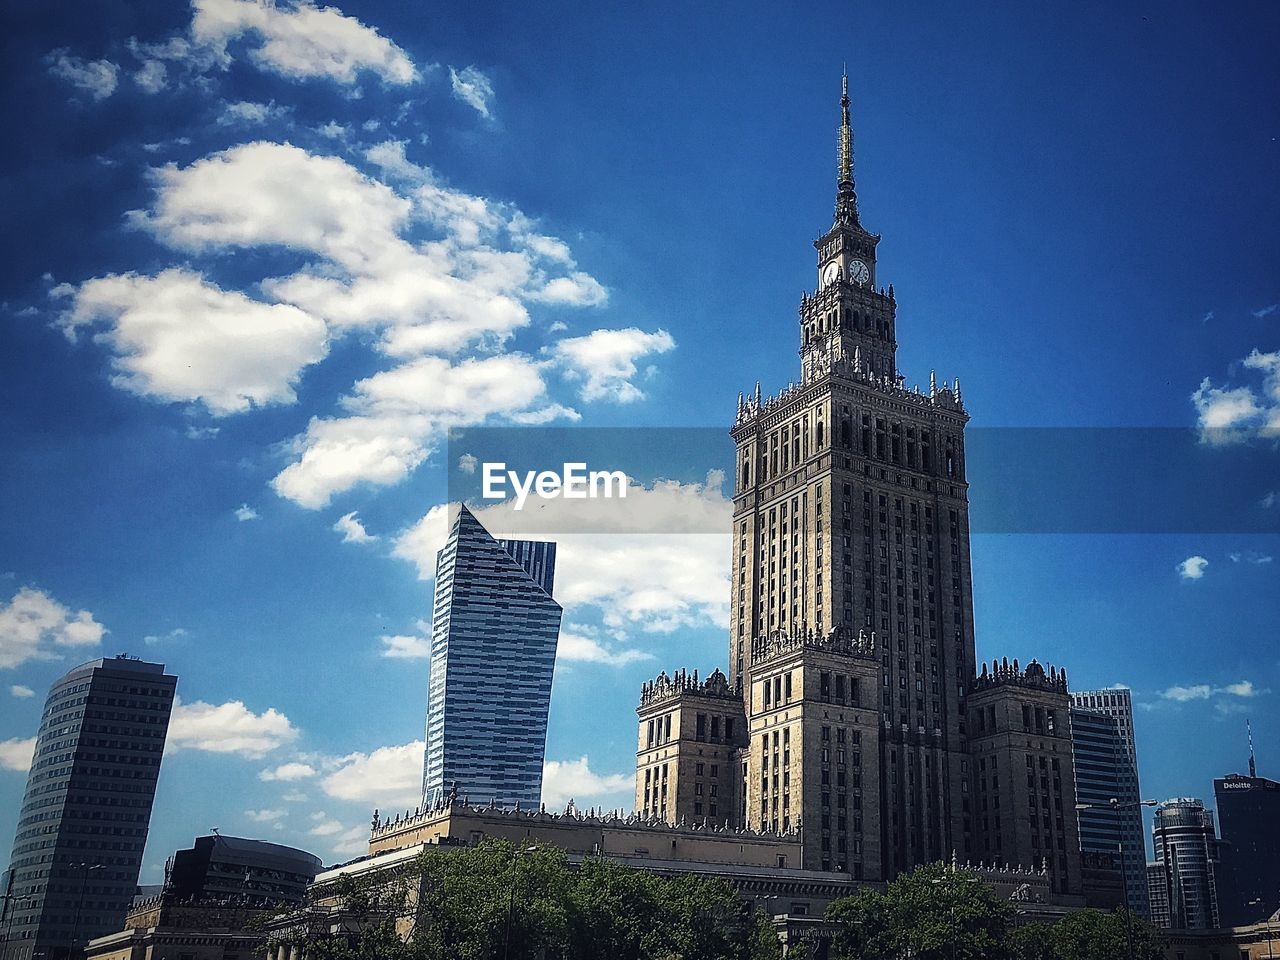 building exterior, built structure, architecture, sky, building, tower, tall - high, low angle view, skyscraper, office building exterior, city, travel destinations, modern, cloud - sky, nature, office, tourism, no people, day, spire, outdoors, financial district